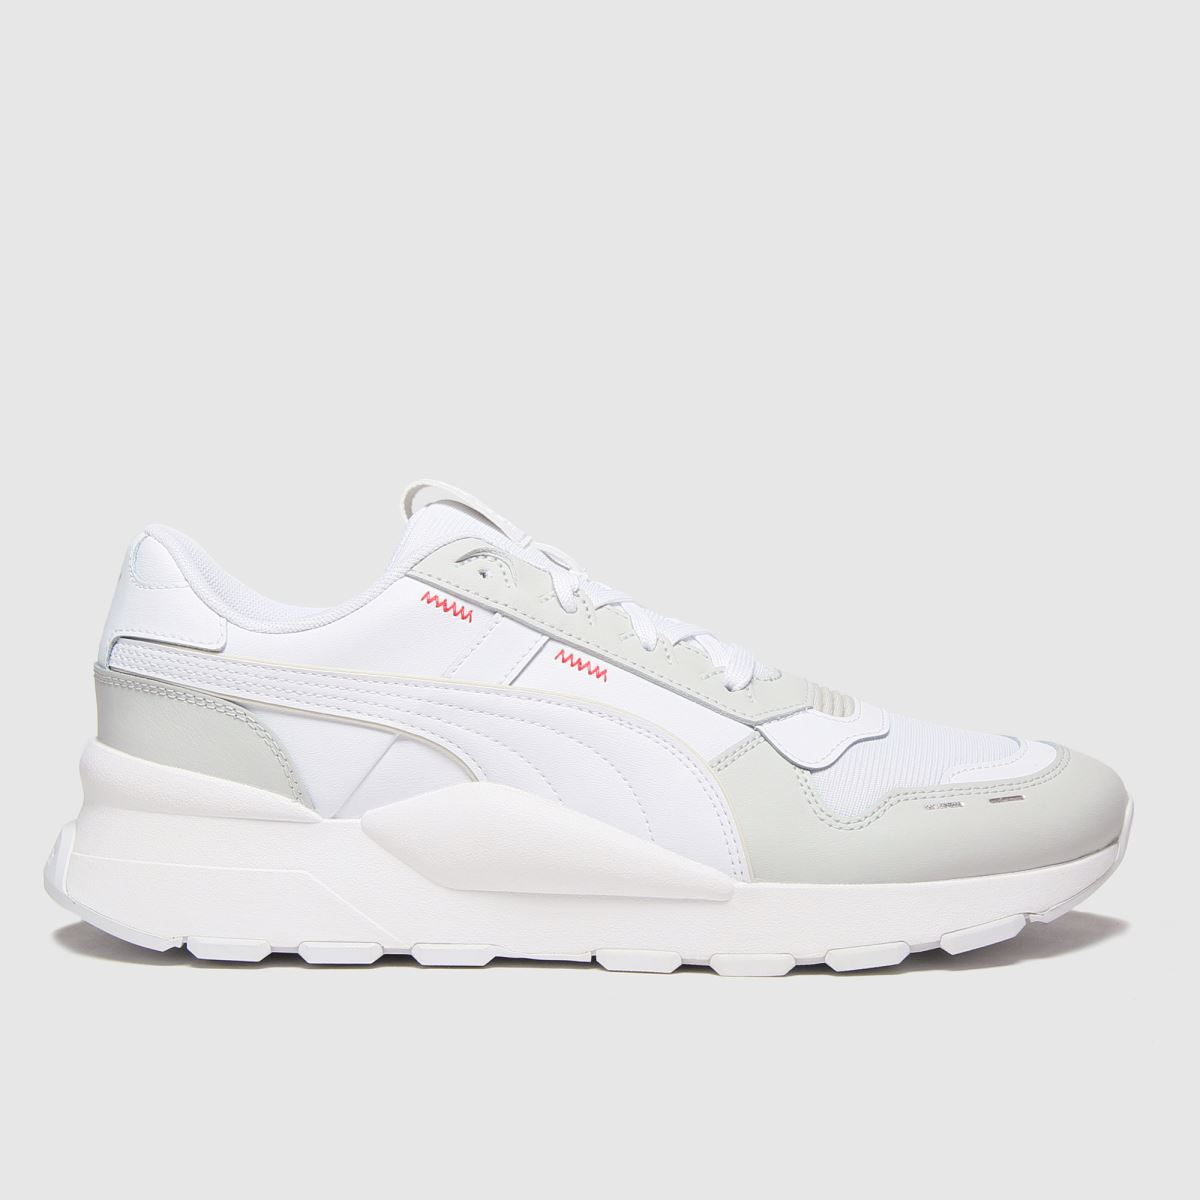 PUMA White Rs 2.0 Futura Trainers